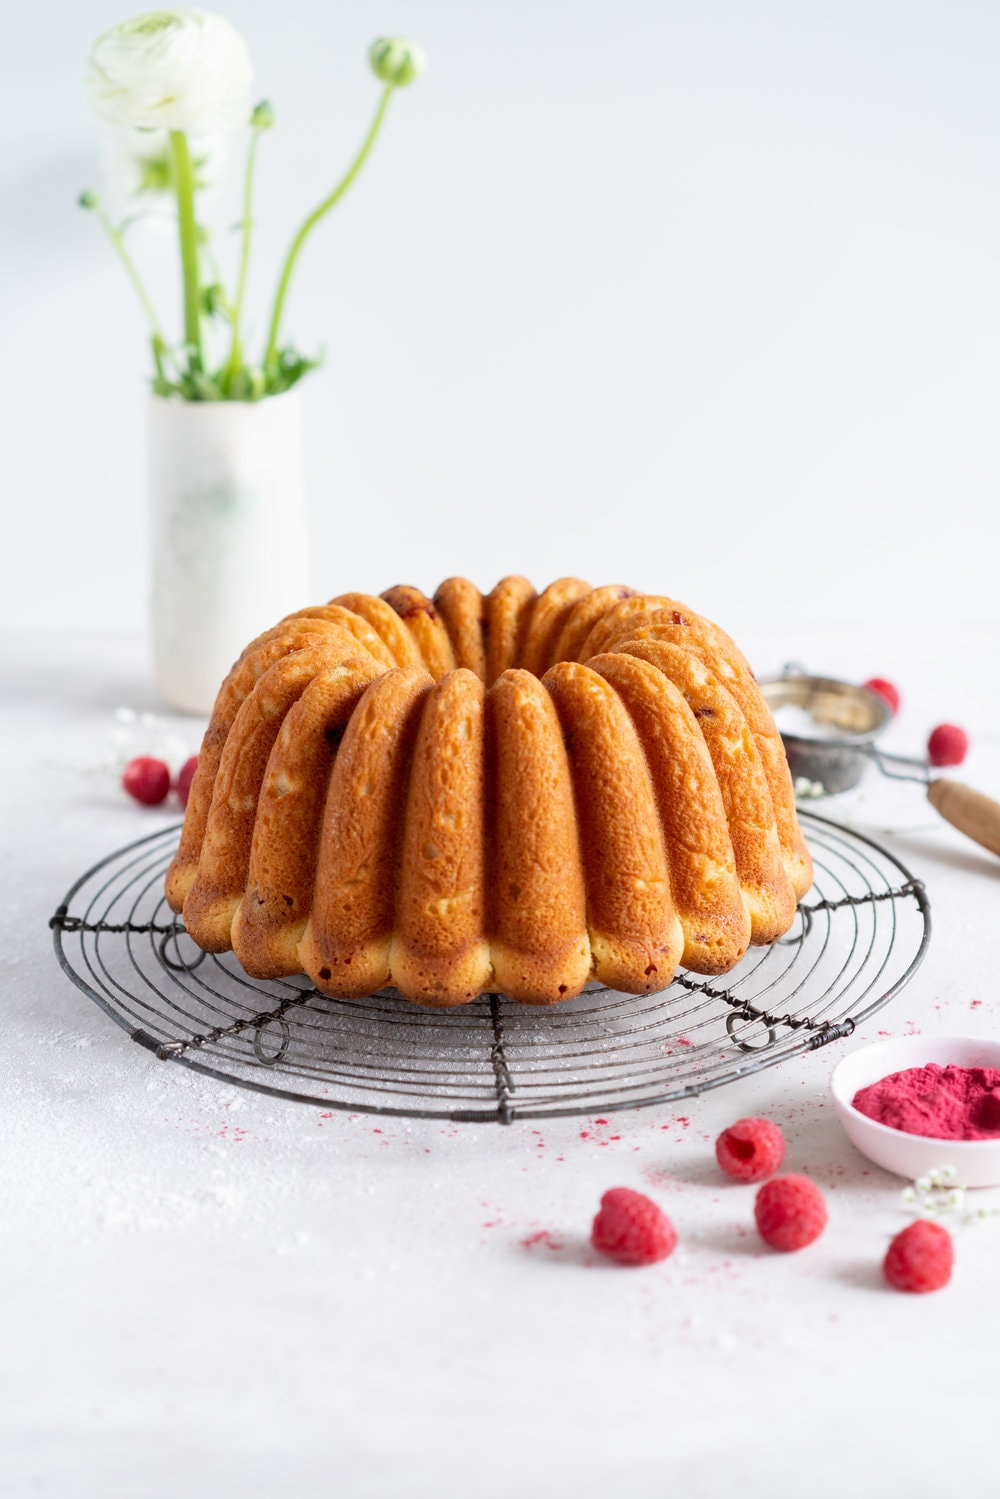 Raspberry Ricotta bundt cake - a tender vanilla bean bundt cake is accented with tart raspberries. This easy, stir together cake is the perfect texture, is simple to put together, and is perfect for feeding a crowd. #bundtcake #ricottacake #raspberrybundt